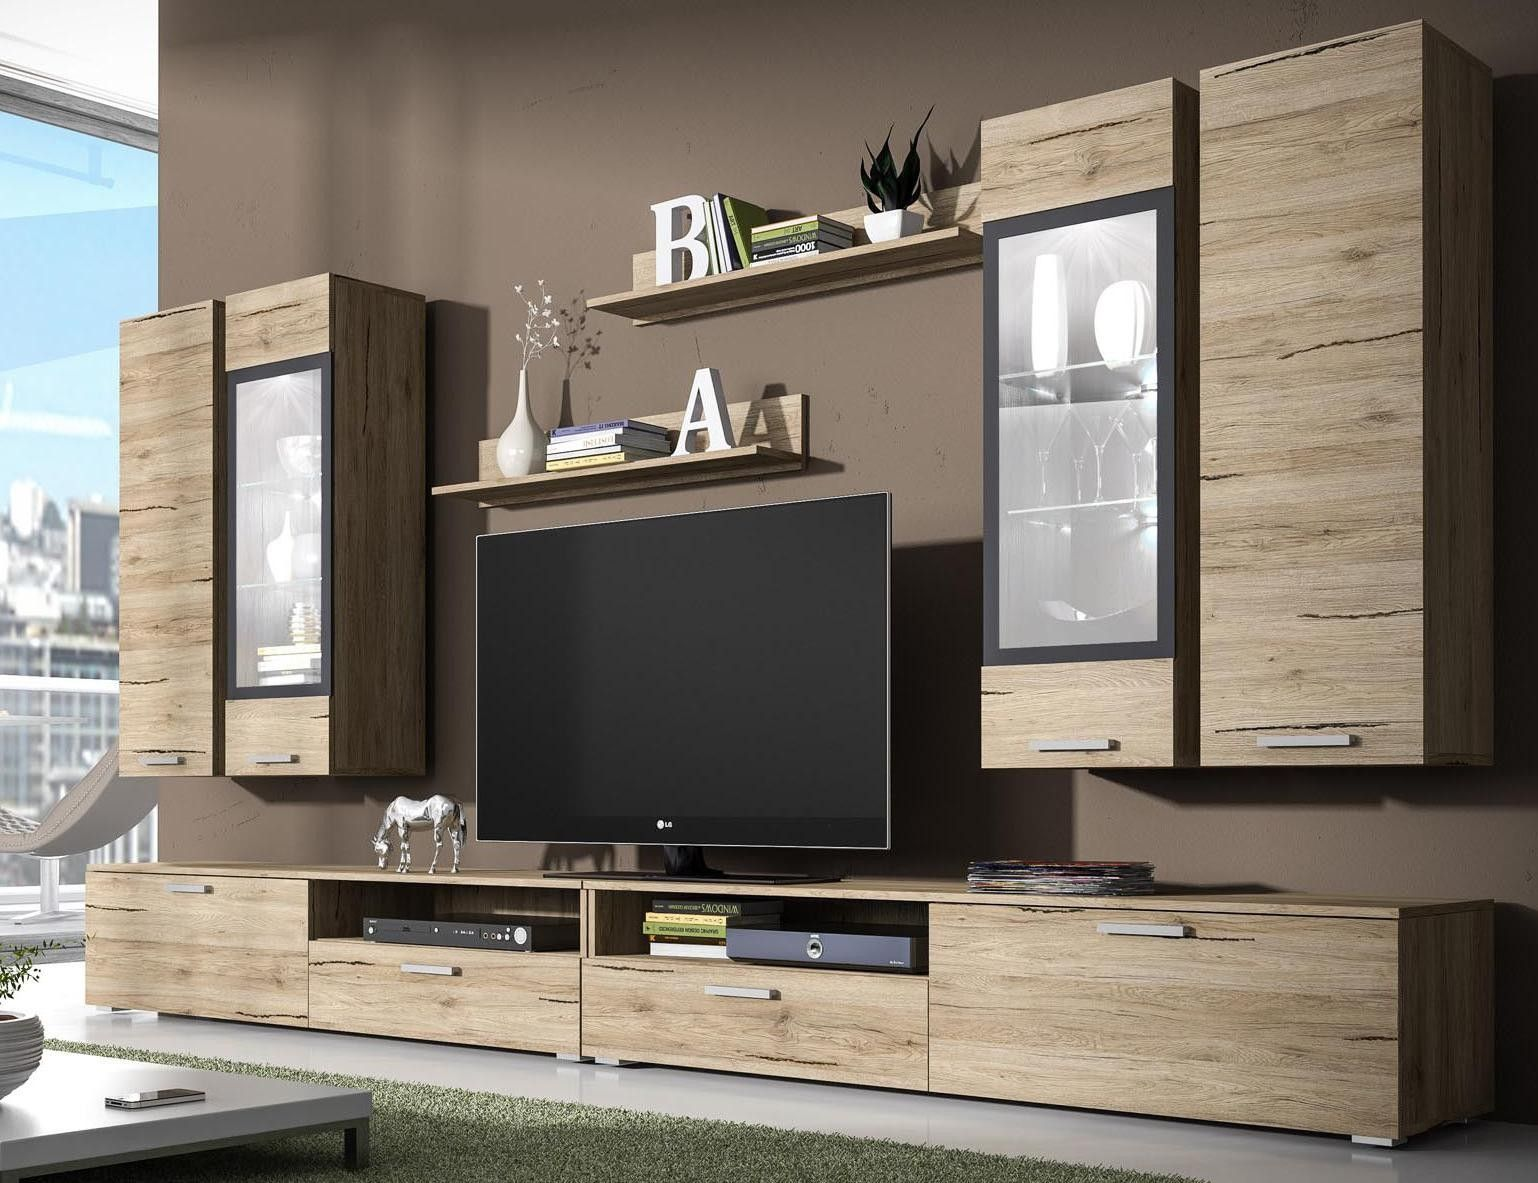 Meuble Tv Lounge - Ensemble Meuble Tv Mural Nova Meuble Tv Design Pas Cher [mjhdah]https://i.pinimg.com/originals/35/9e/0f/359e0f453d3d142a3230bdc610806792.jpg